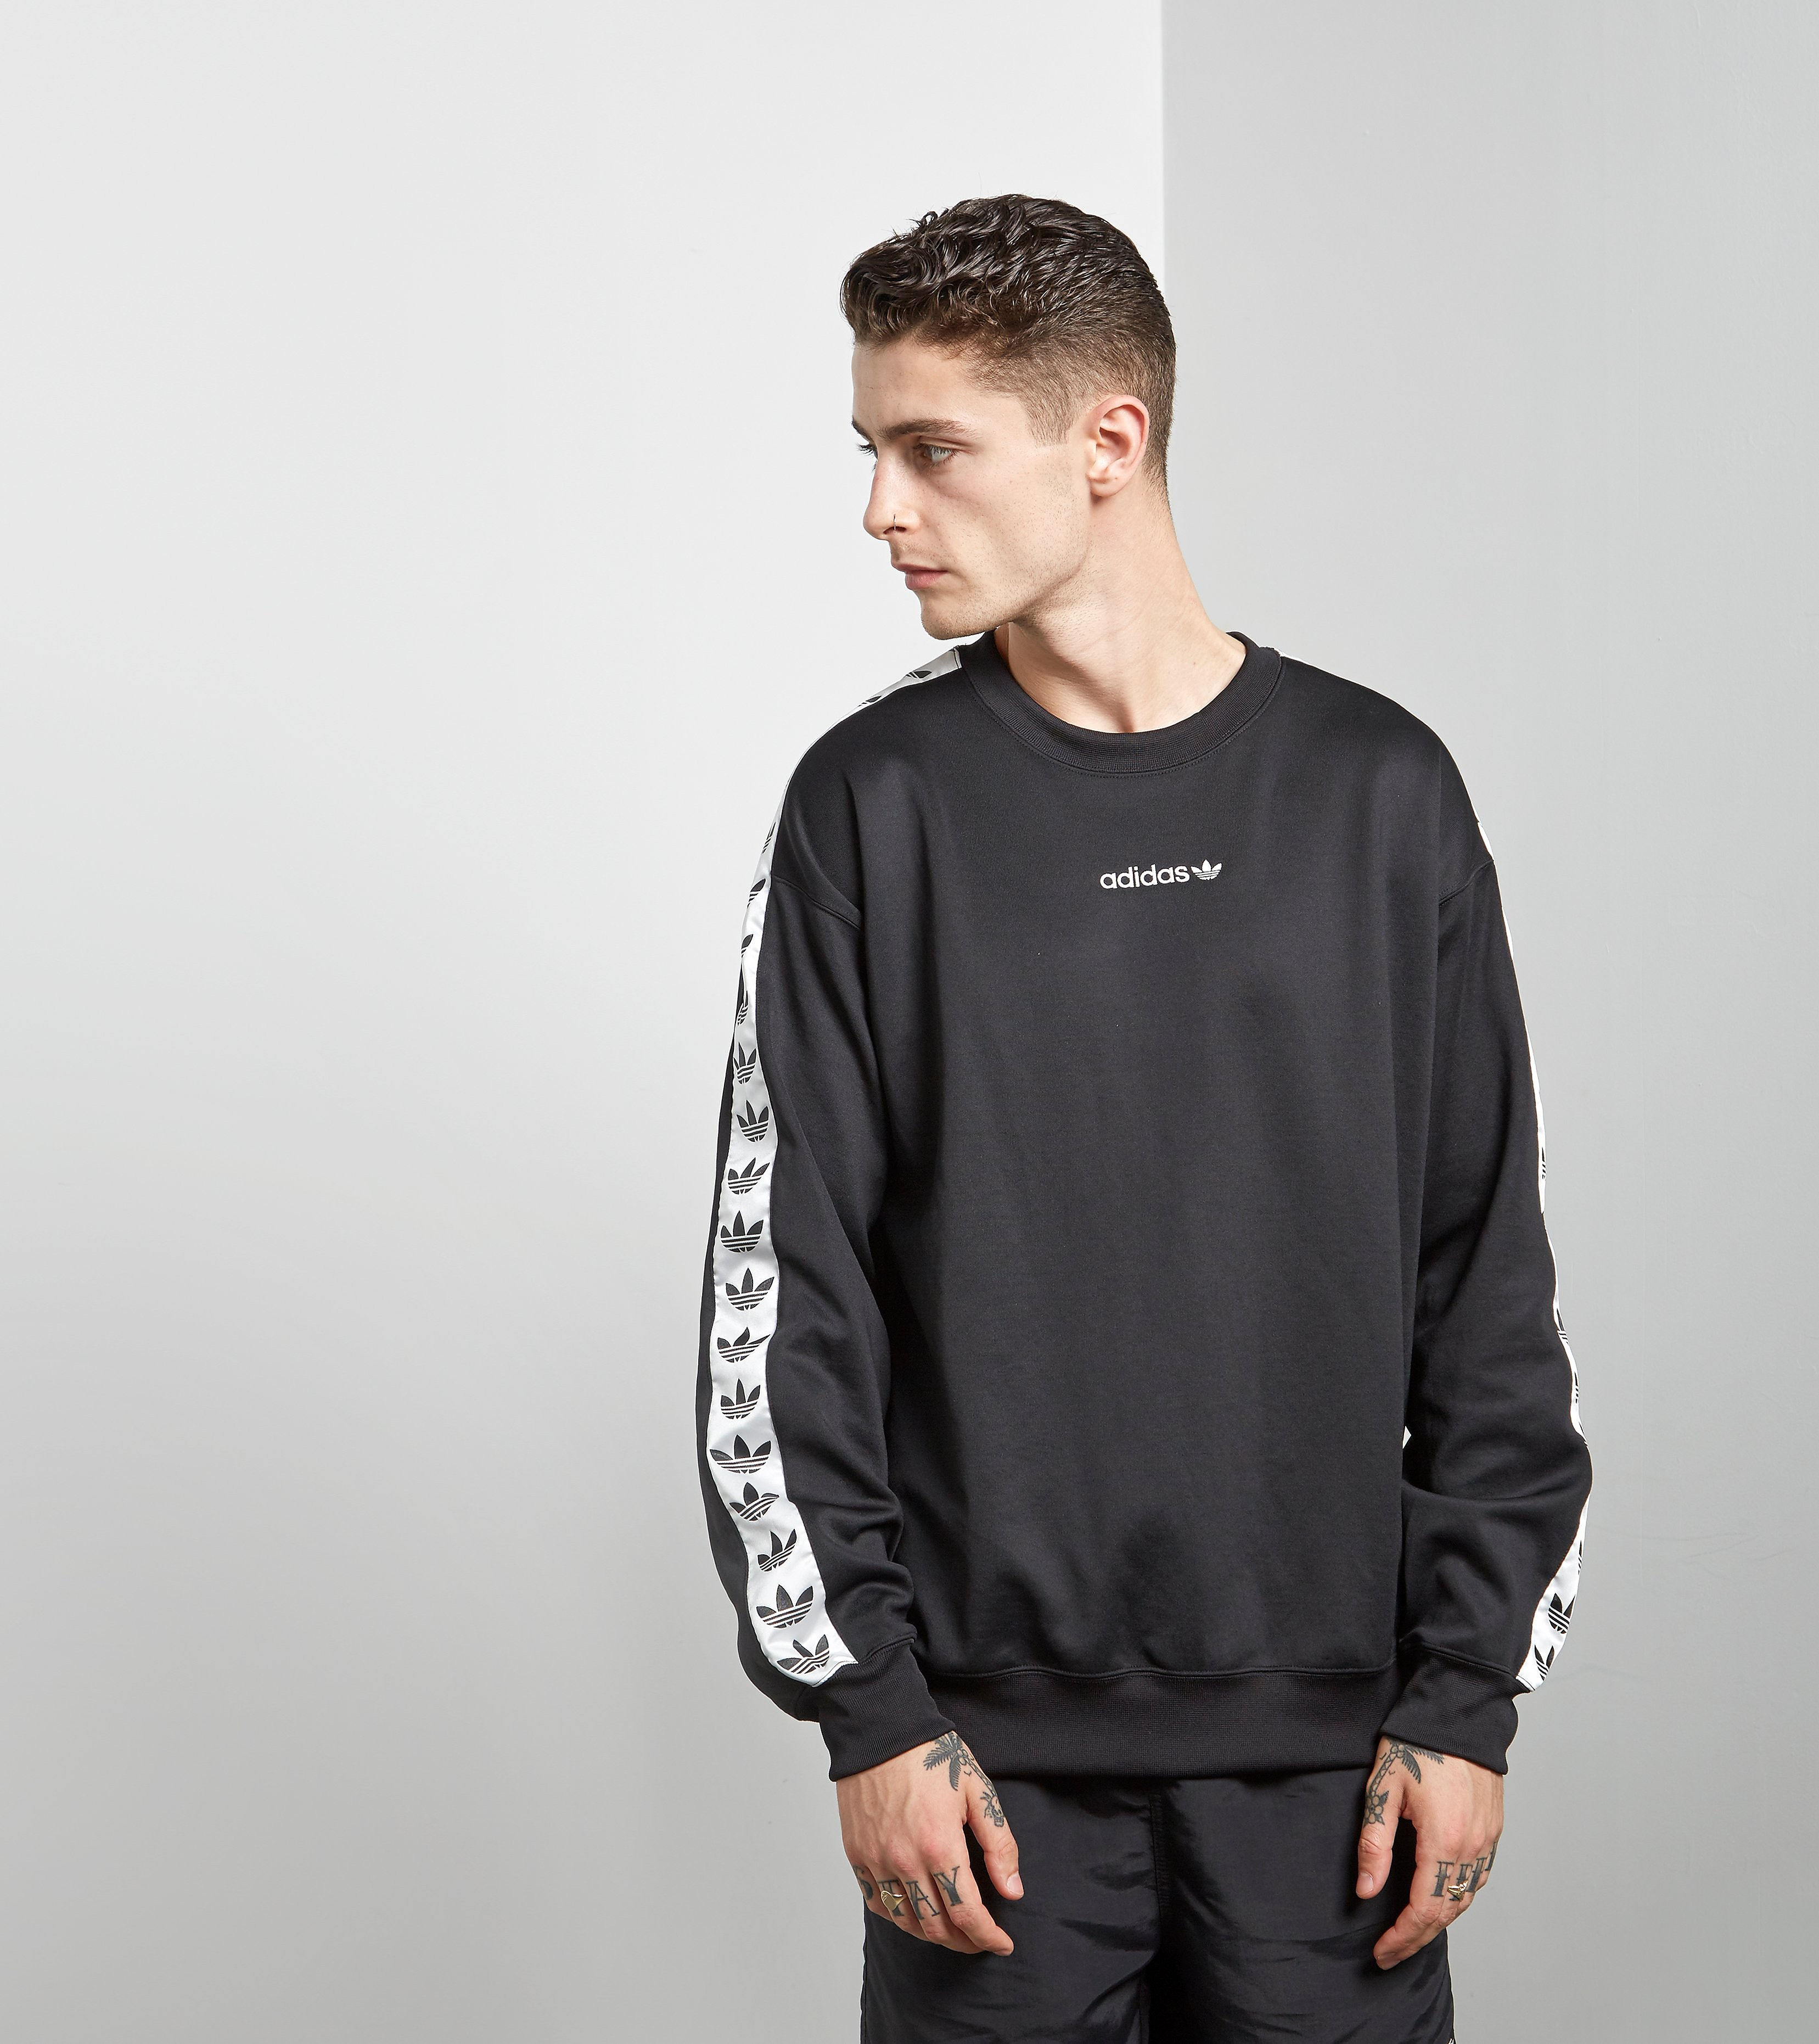 adidas Originals Tape Crew Sweatshirt